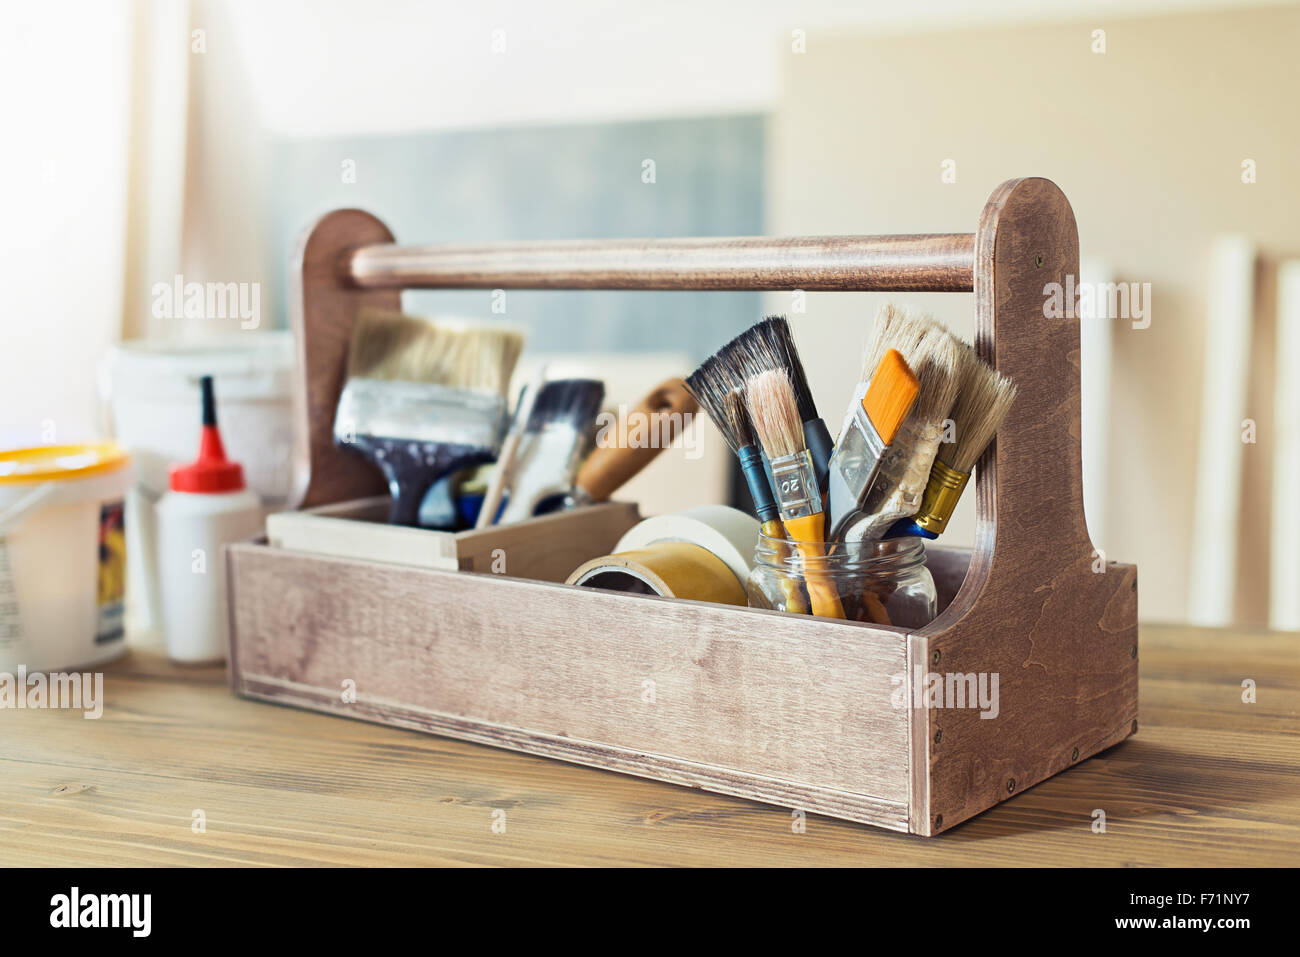 Paint brushes and crafting supplies in wooden toolbox - Stock Image